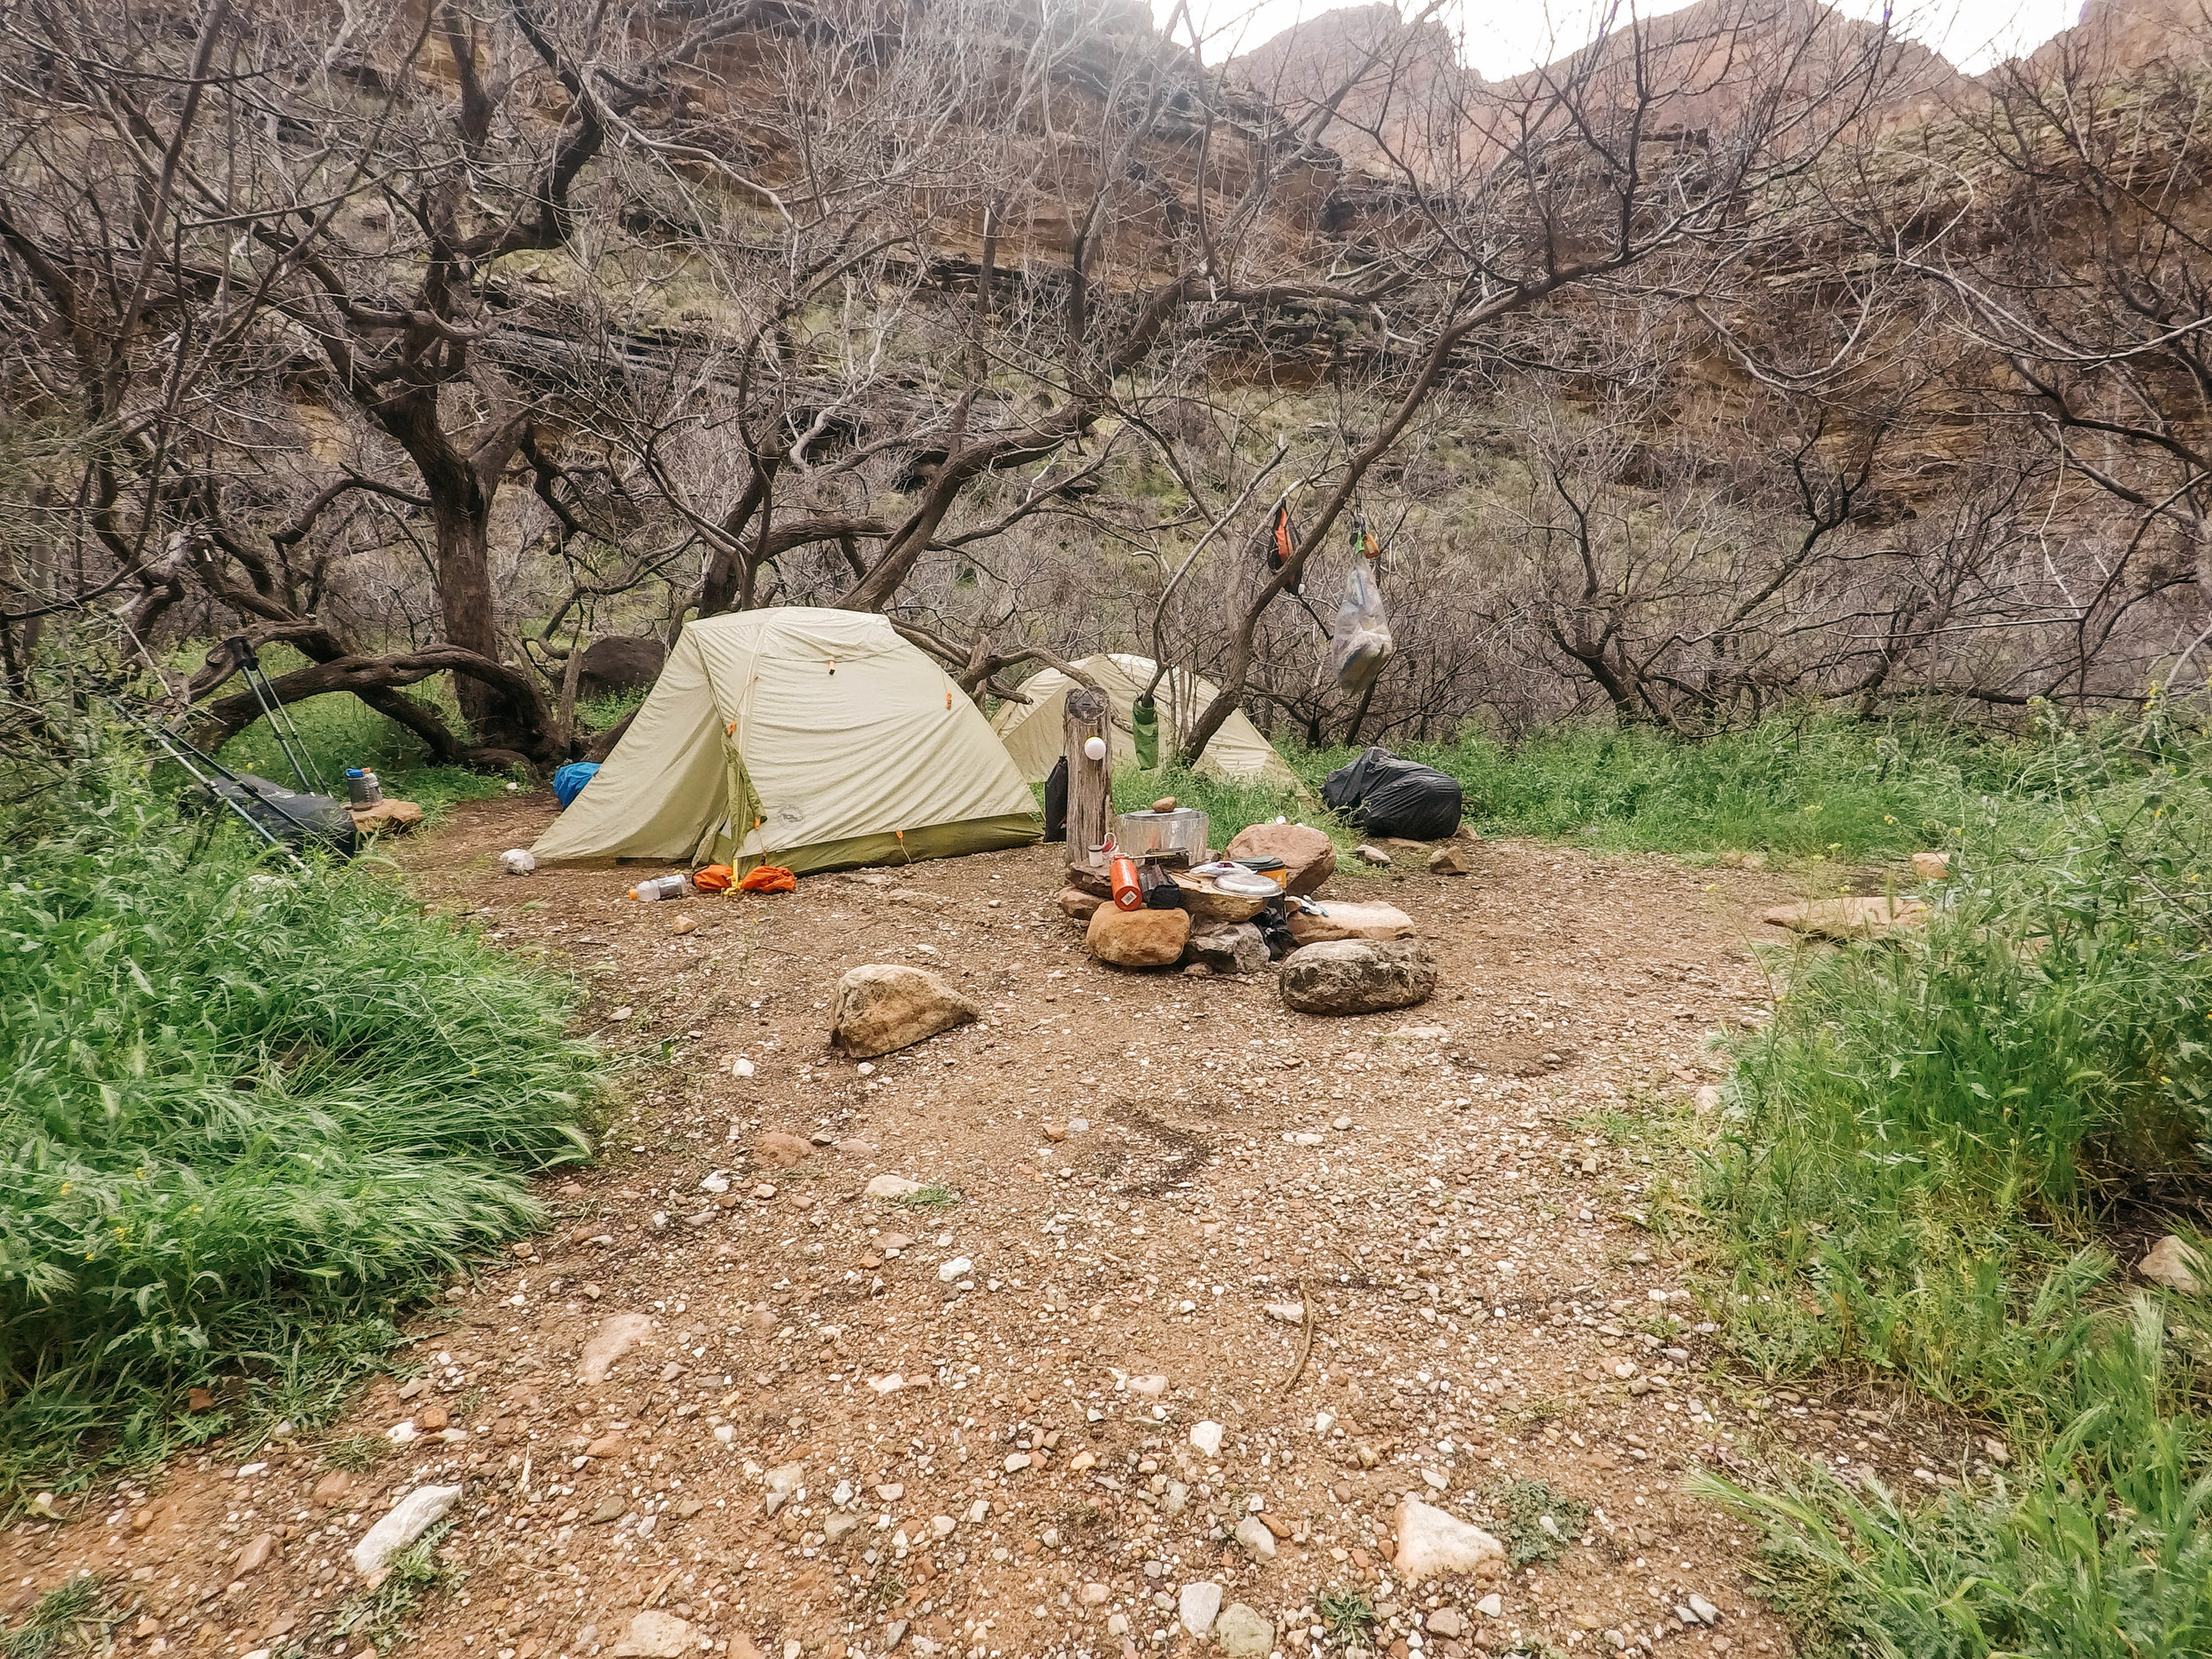 Our camp at monument creek. We slept under a very old, very strong tree.